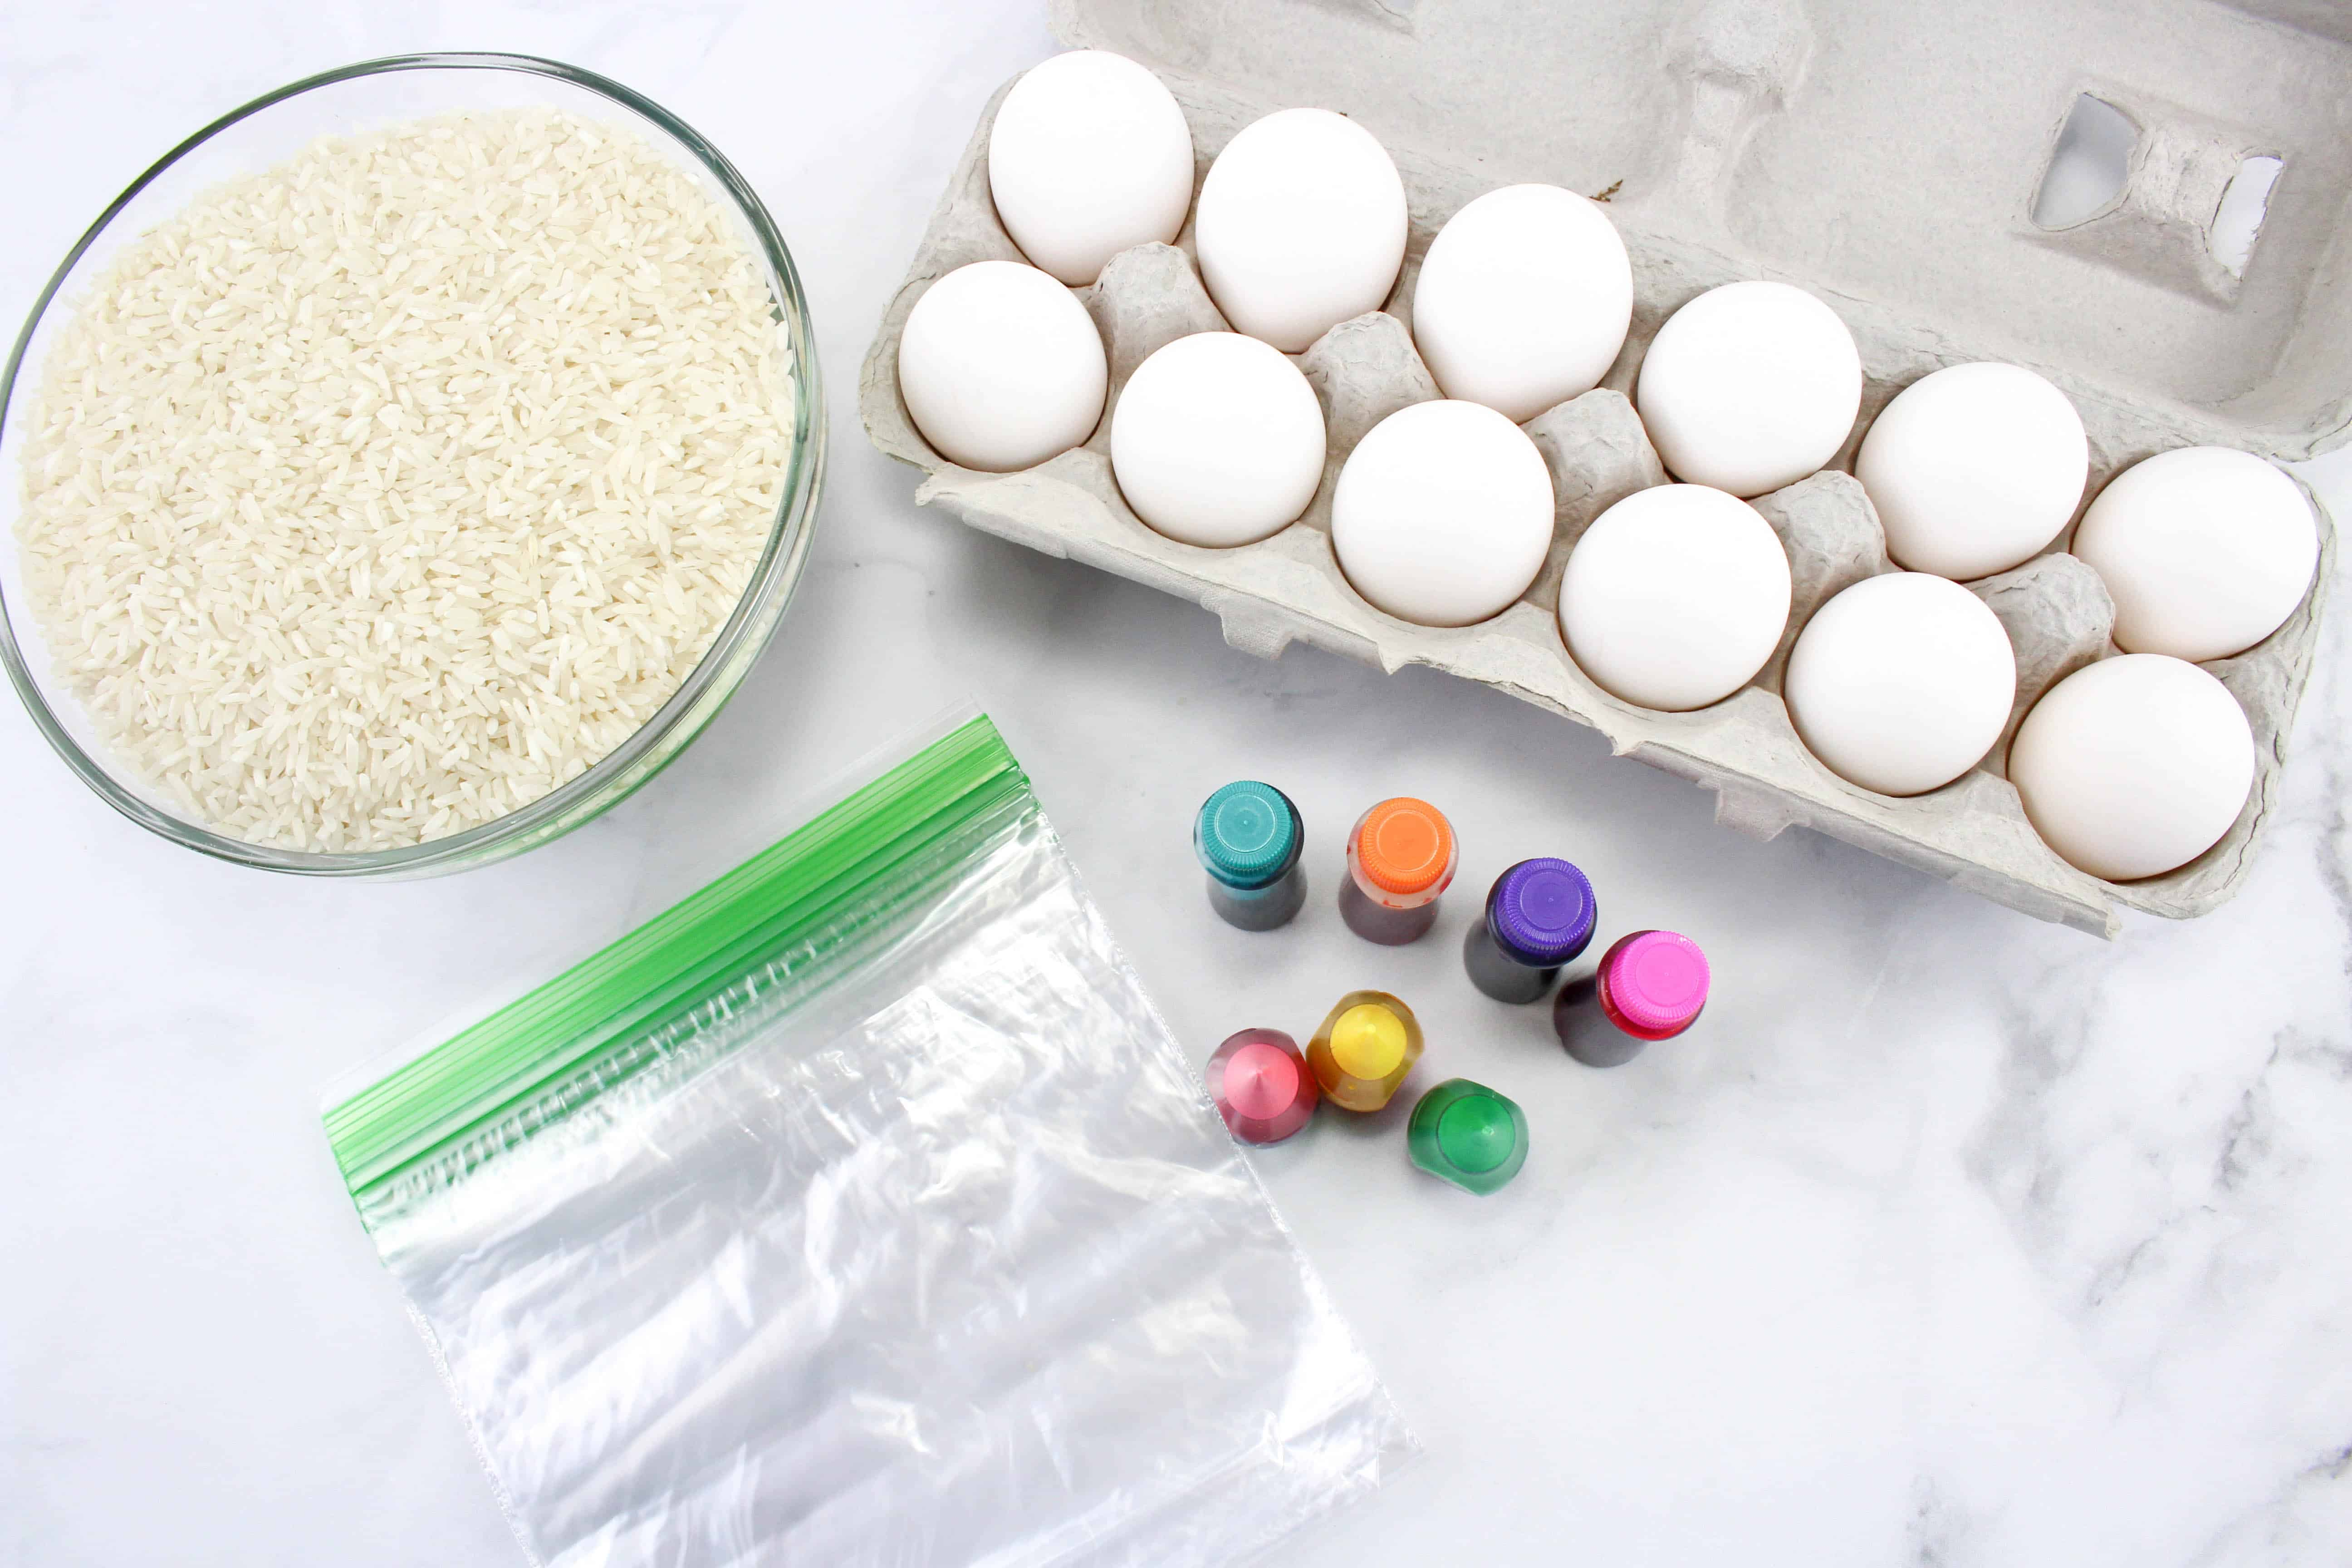 Rice, eggs, and food coloring